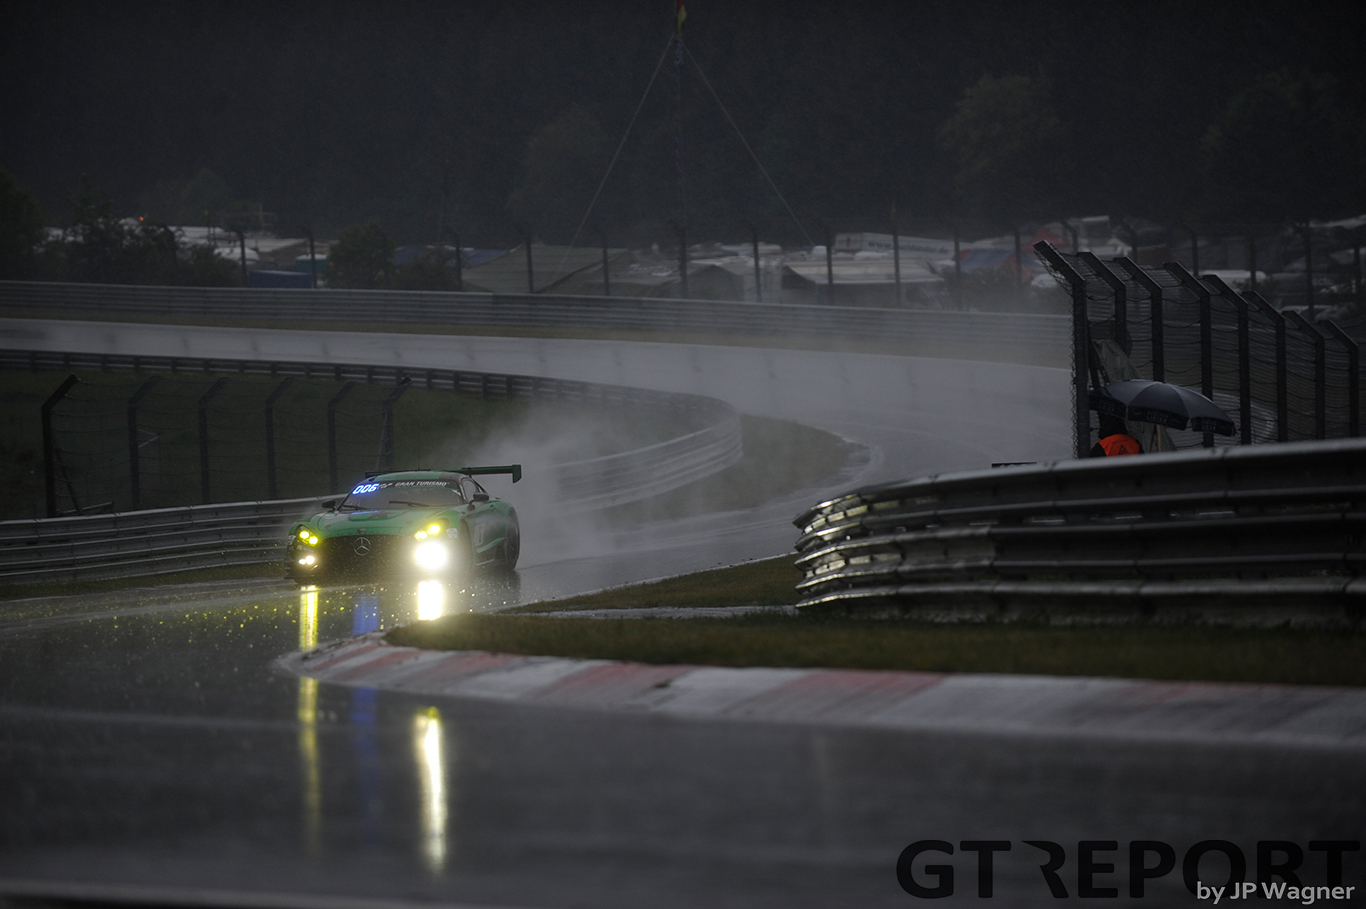 Nürburgring 24 Hours suspended due to fog